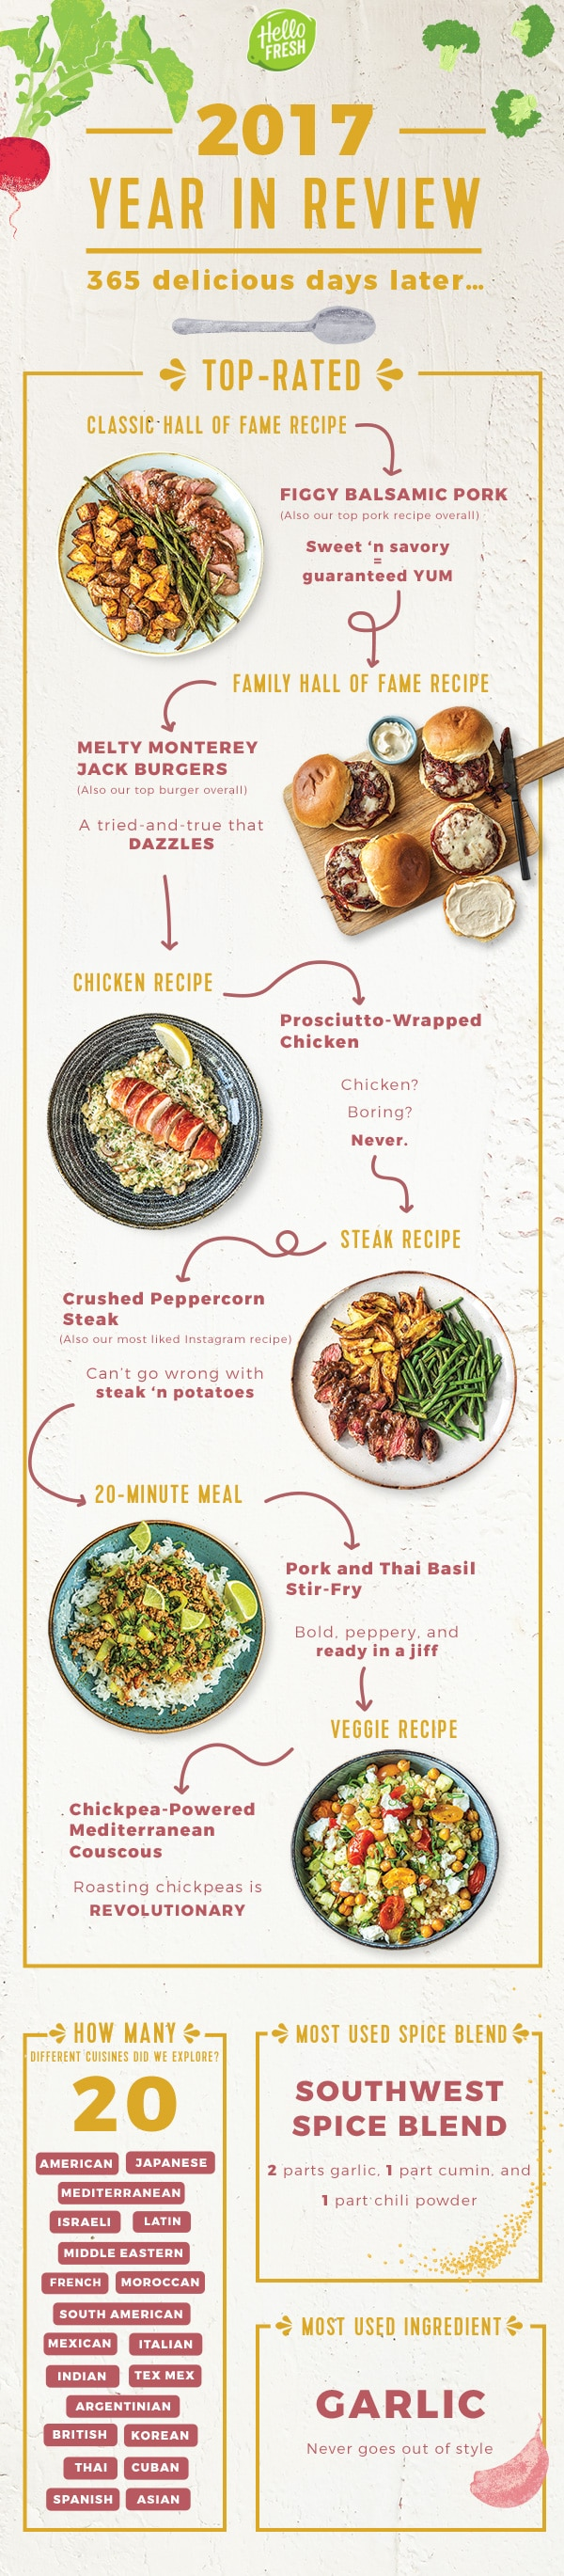 2017 year in review-HelloFresh-2017-infographic